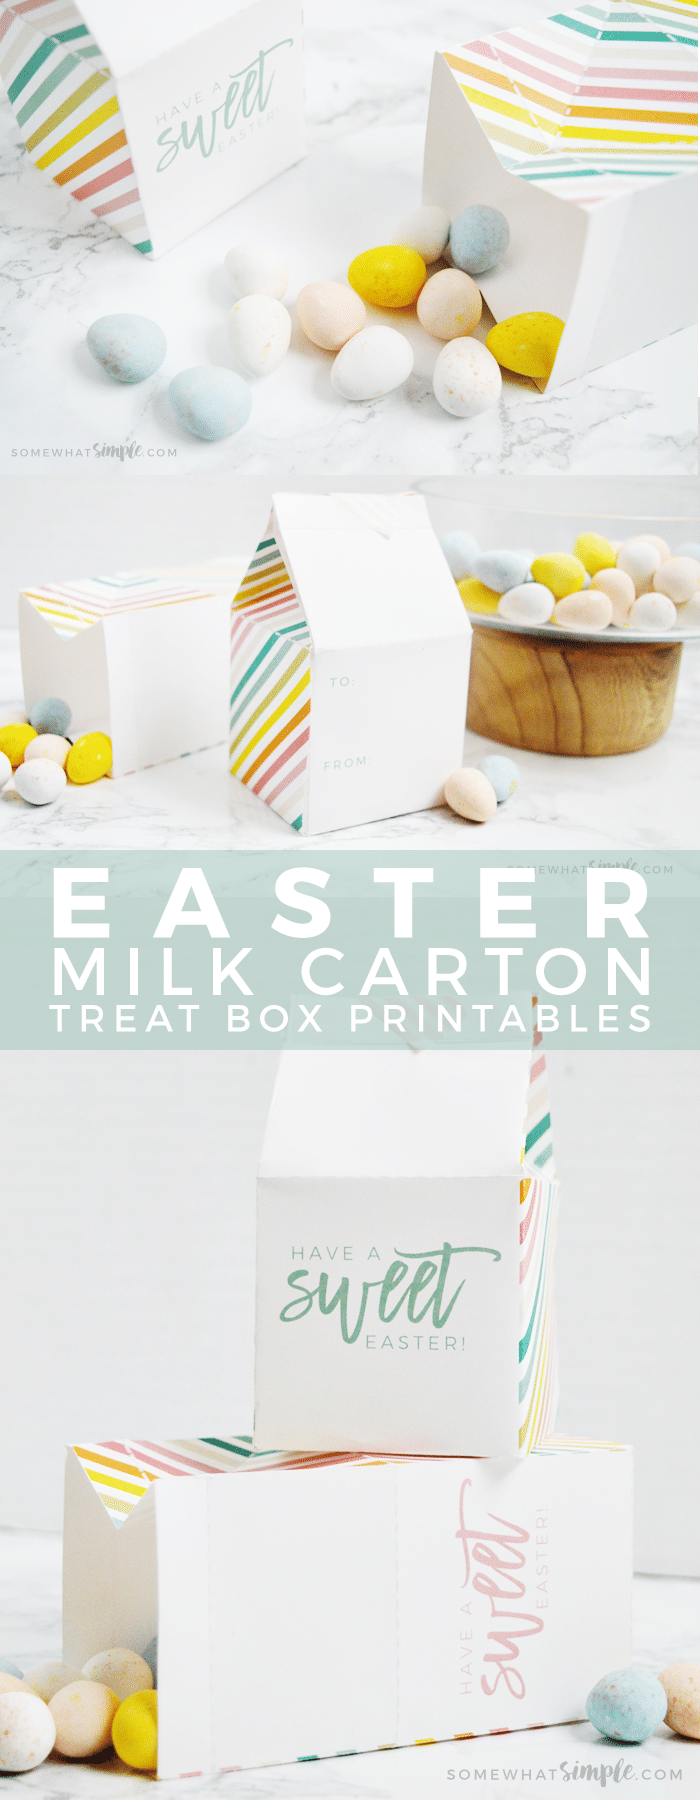 These darling Easter Milk Carton Treat Boxes are perfect for party favors, place settings, church handouts, etc! So simple to make, and a cute way to stay within your budget! via @somewhatsimple